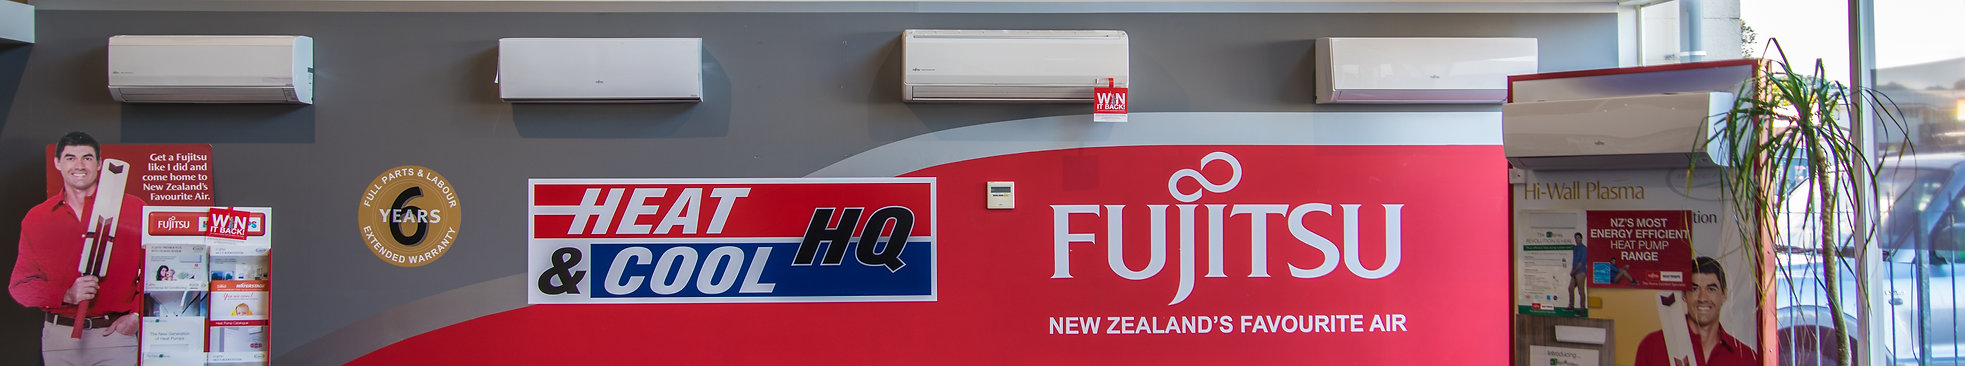 Shane Snowden Electrical Fit a Fujitsu Air conditioning Heat Pumps Ventilation Systems